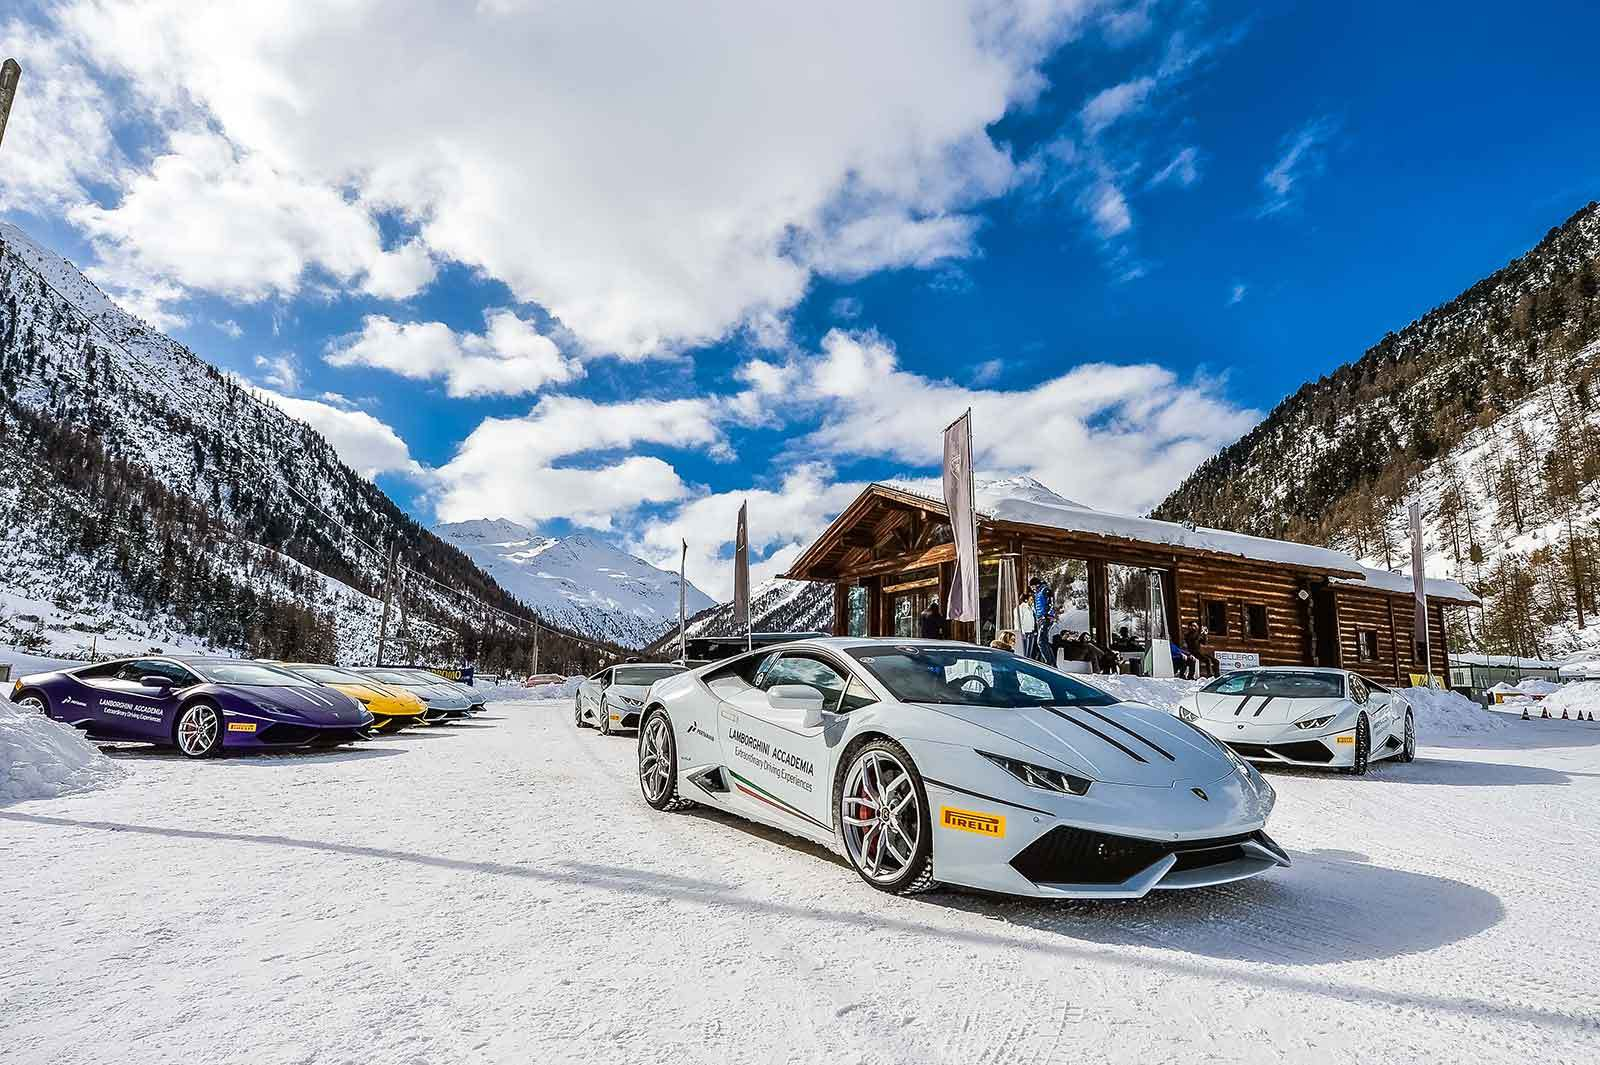 The Lamborghini Winter Accademia